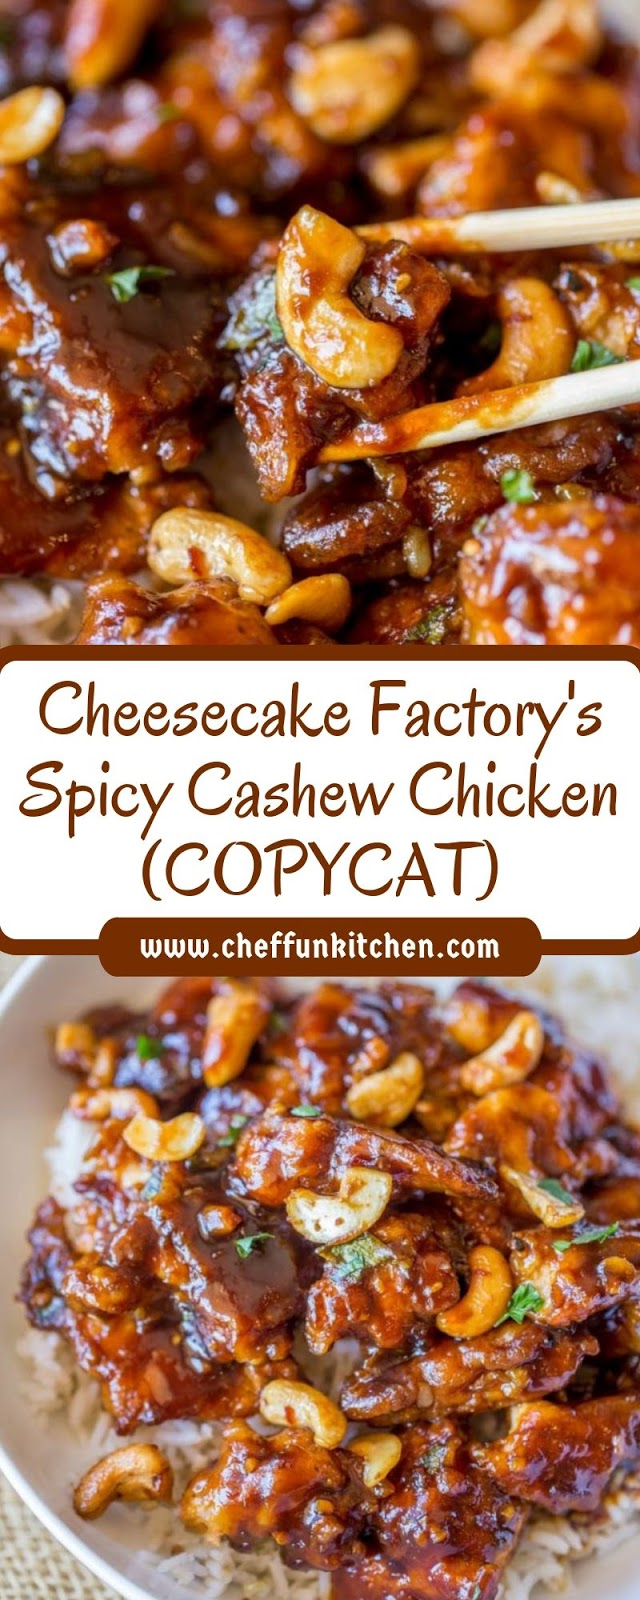 Cheesecake Factory's Spicy Cashew Chicken (COPYCAT)